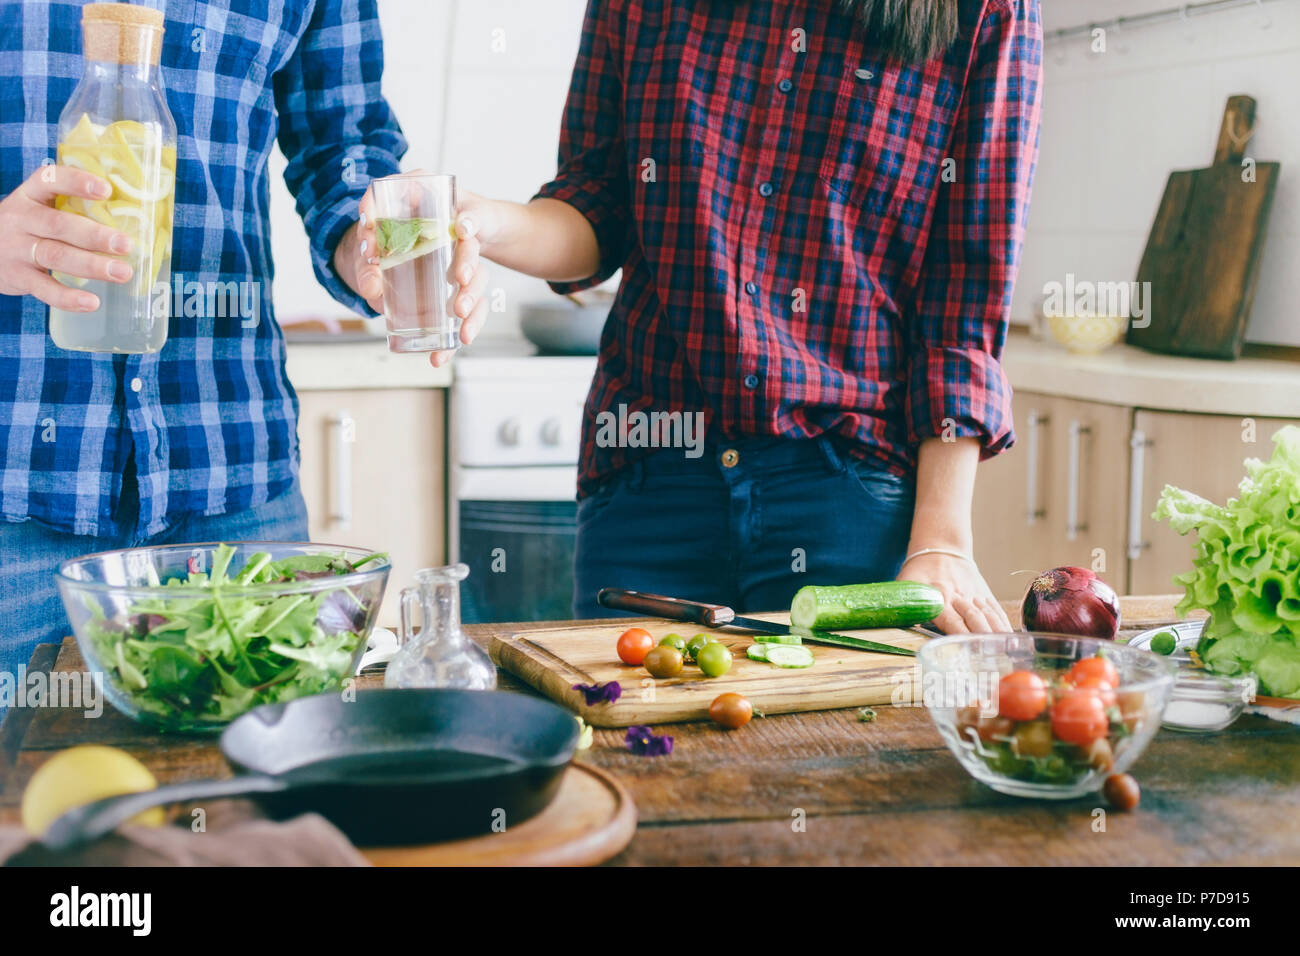 Couple Is Preparing Healthy Light Dinner At Home In The Kitchen. Healthy  Food Concept